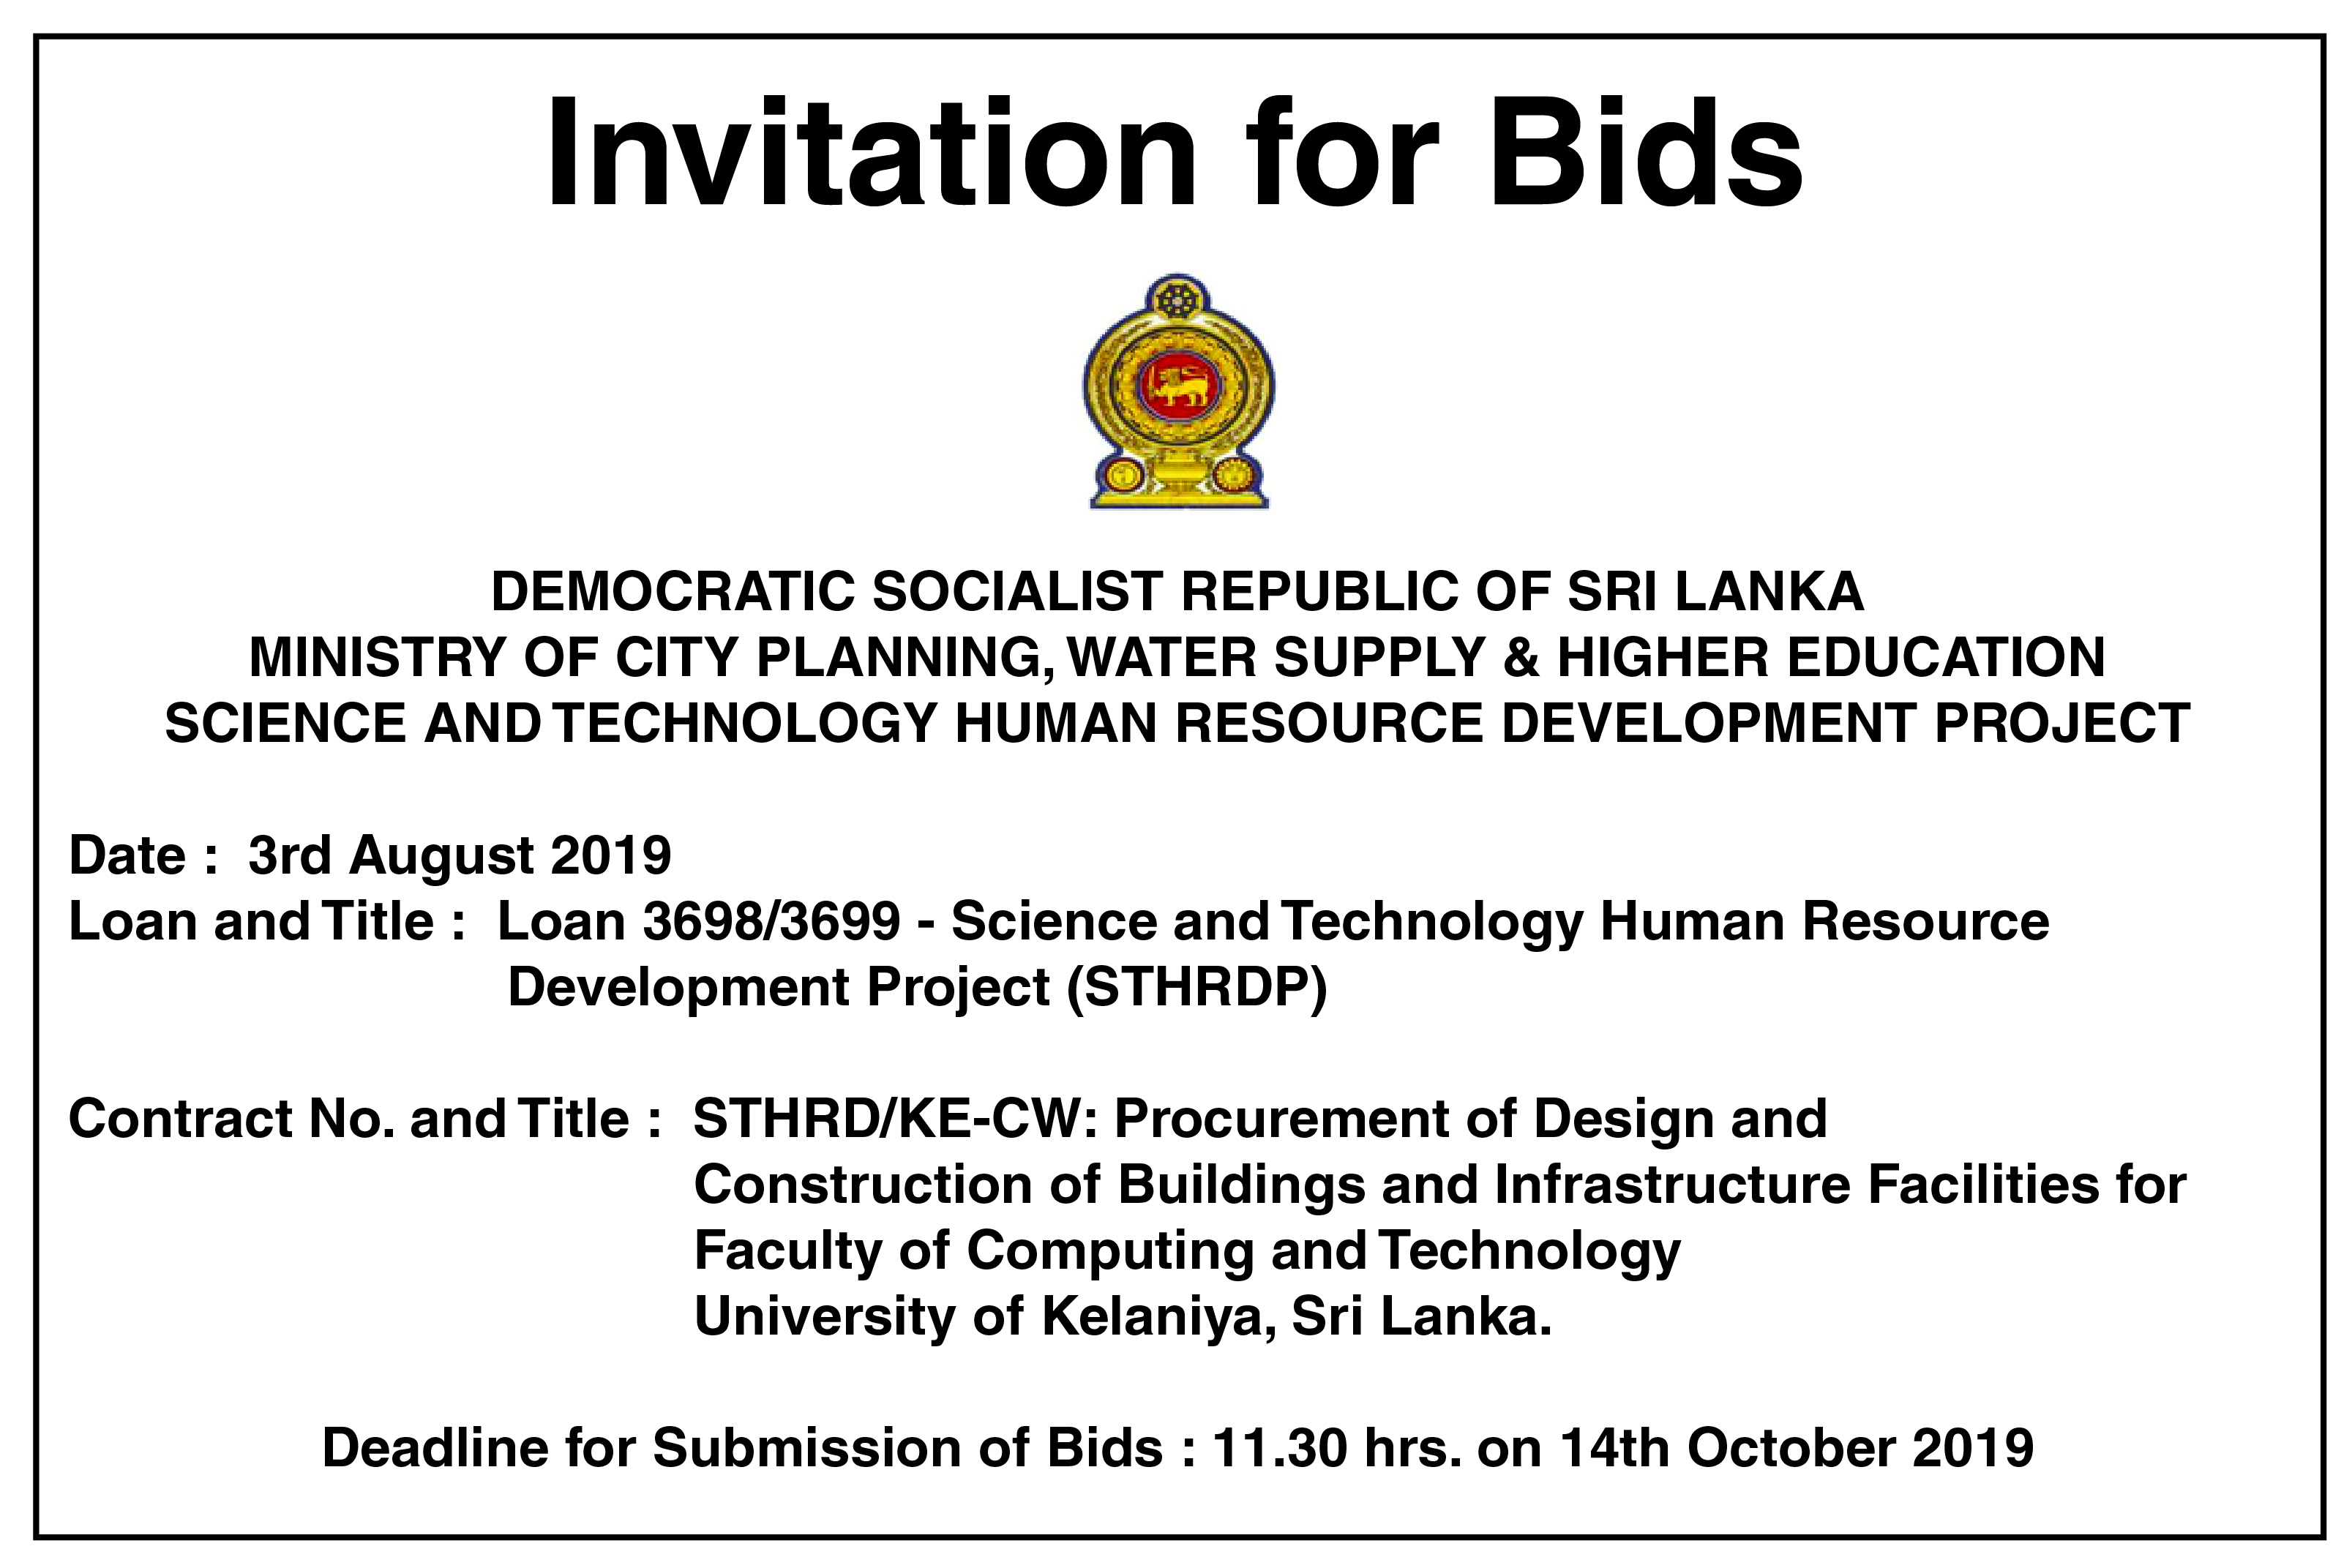 STHRD/KE-CW: Procurement of Design andConstruction of Buildings and Infrastructure Facilities for Faculty of Computing and Technology - University of Kelaniya, Sri Lanka.